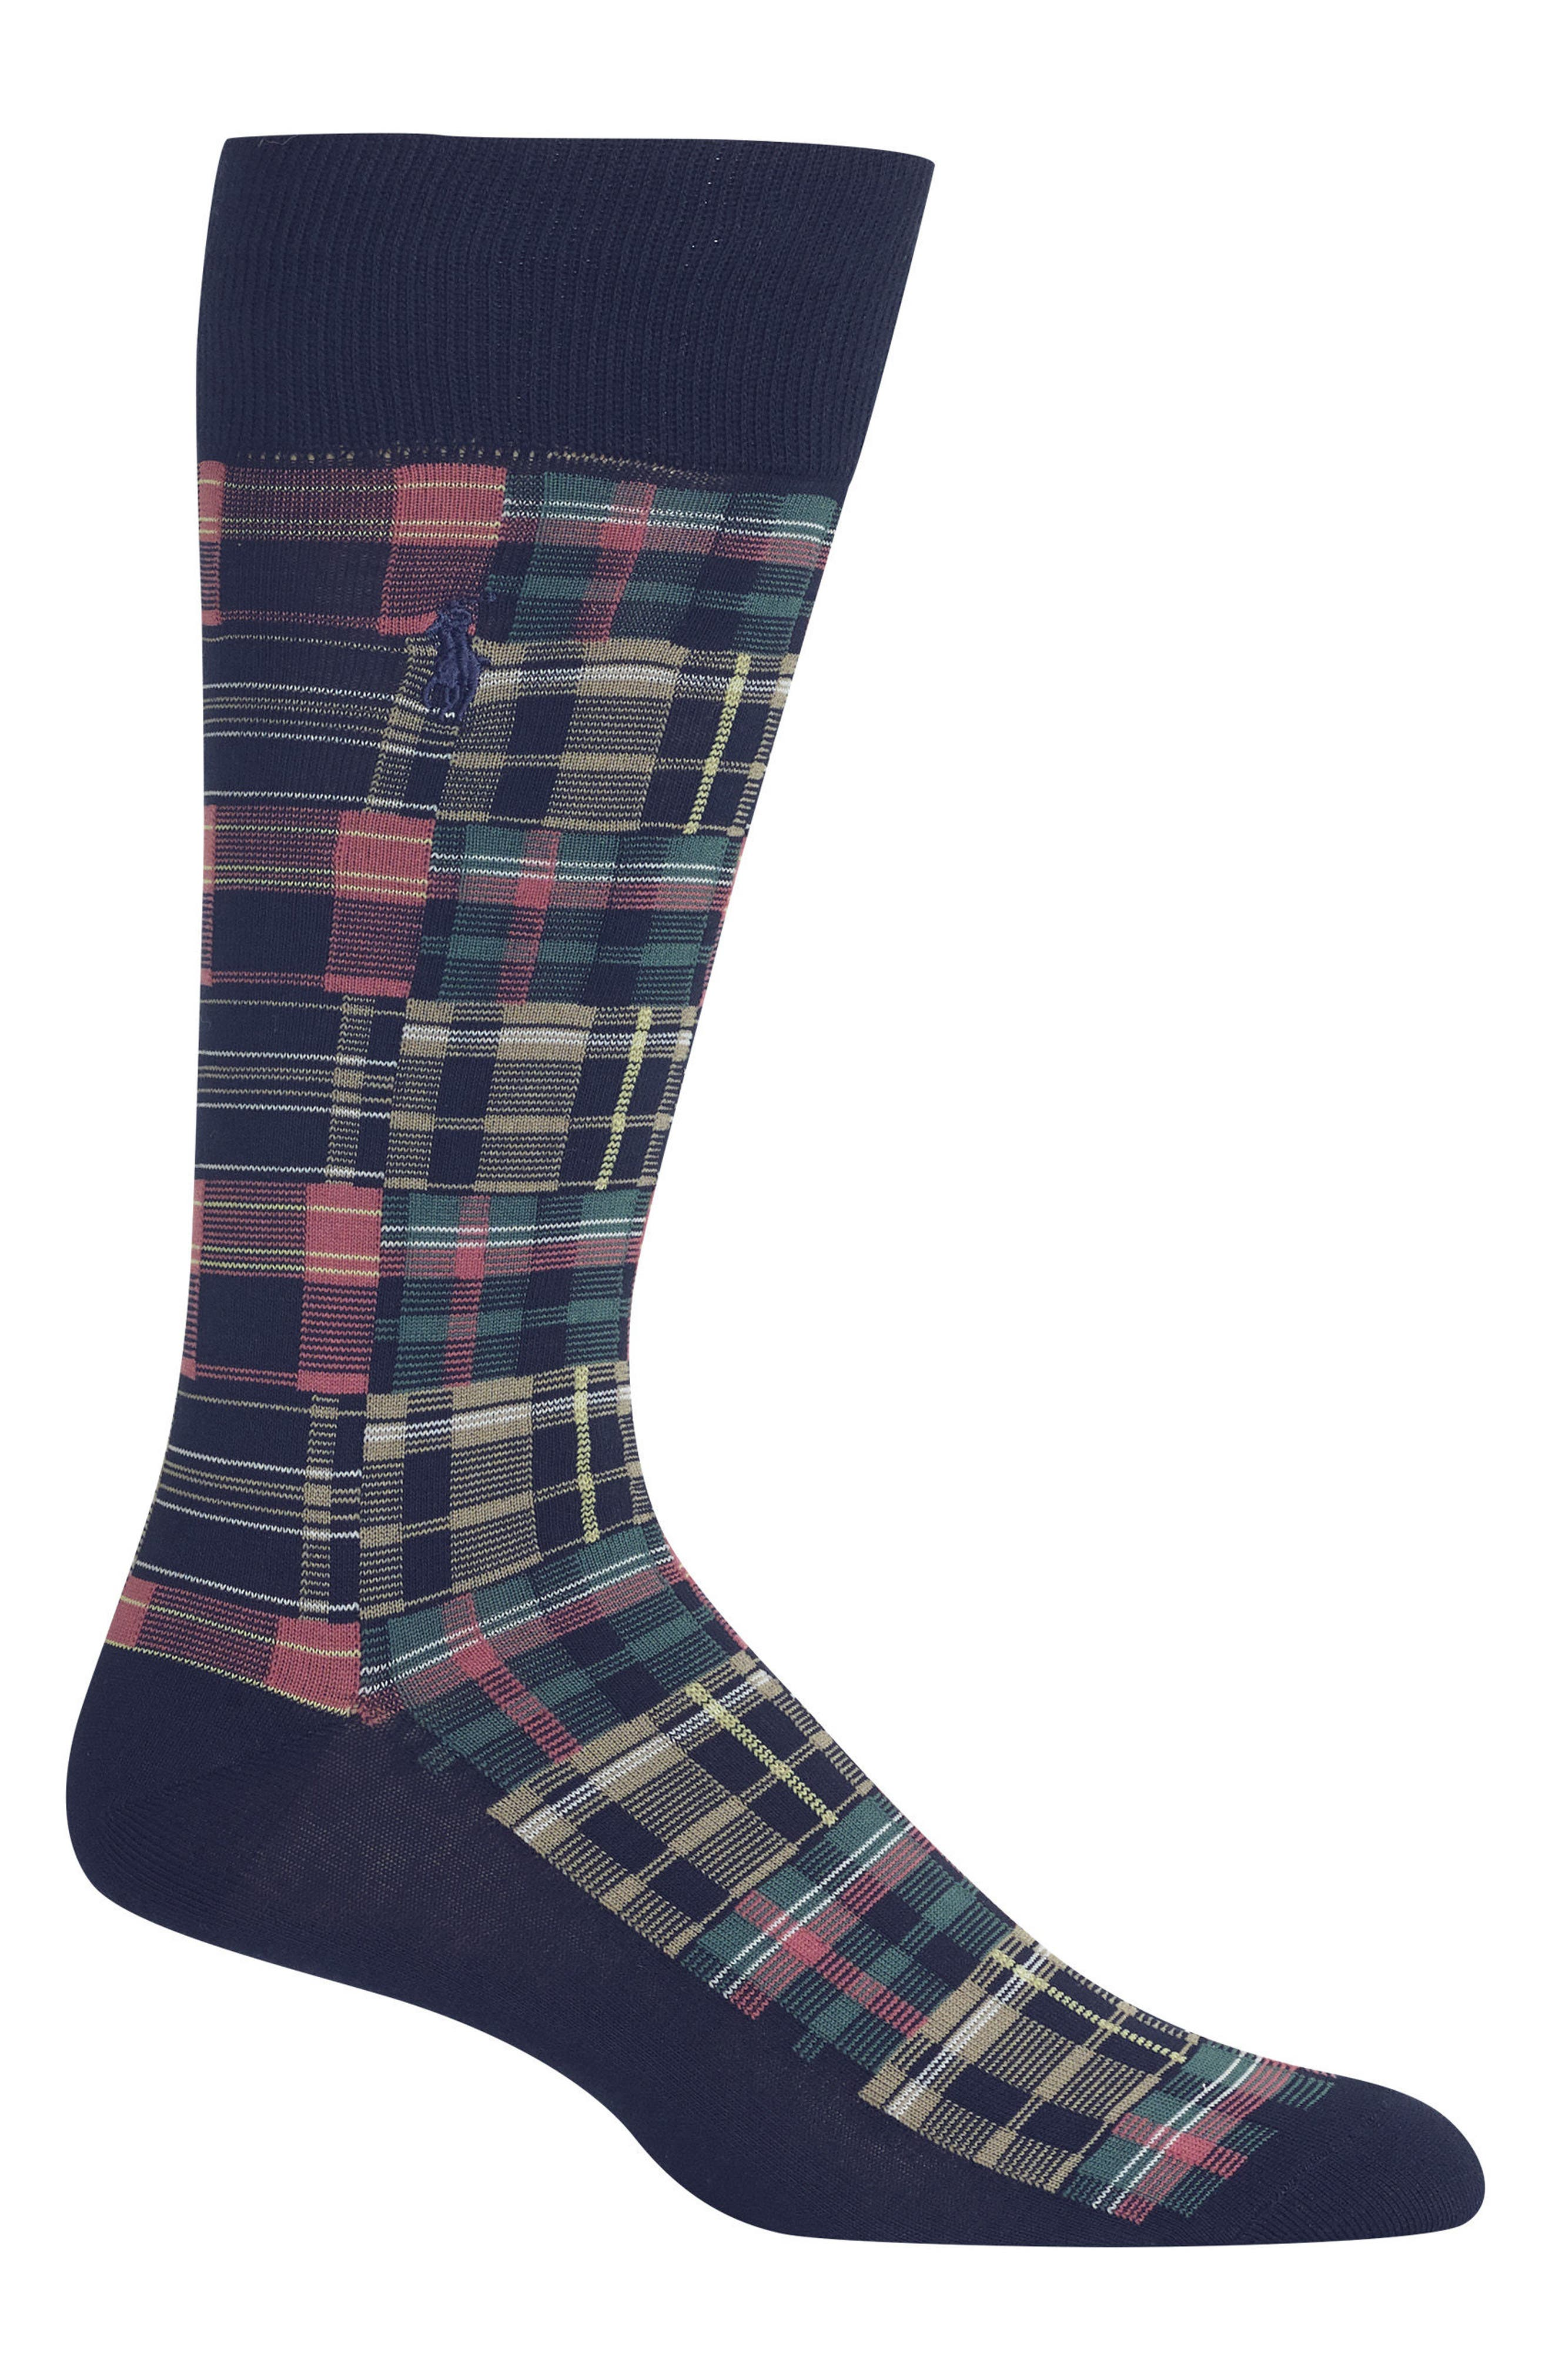 Ralph Lauren Patchwork Madras Socks,                         Main,                         color, 401